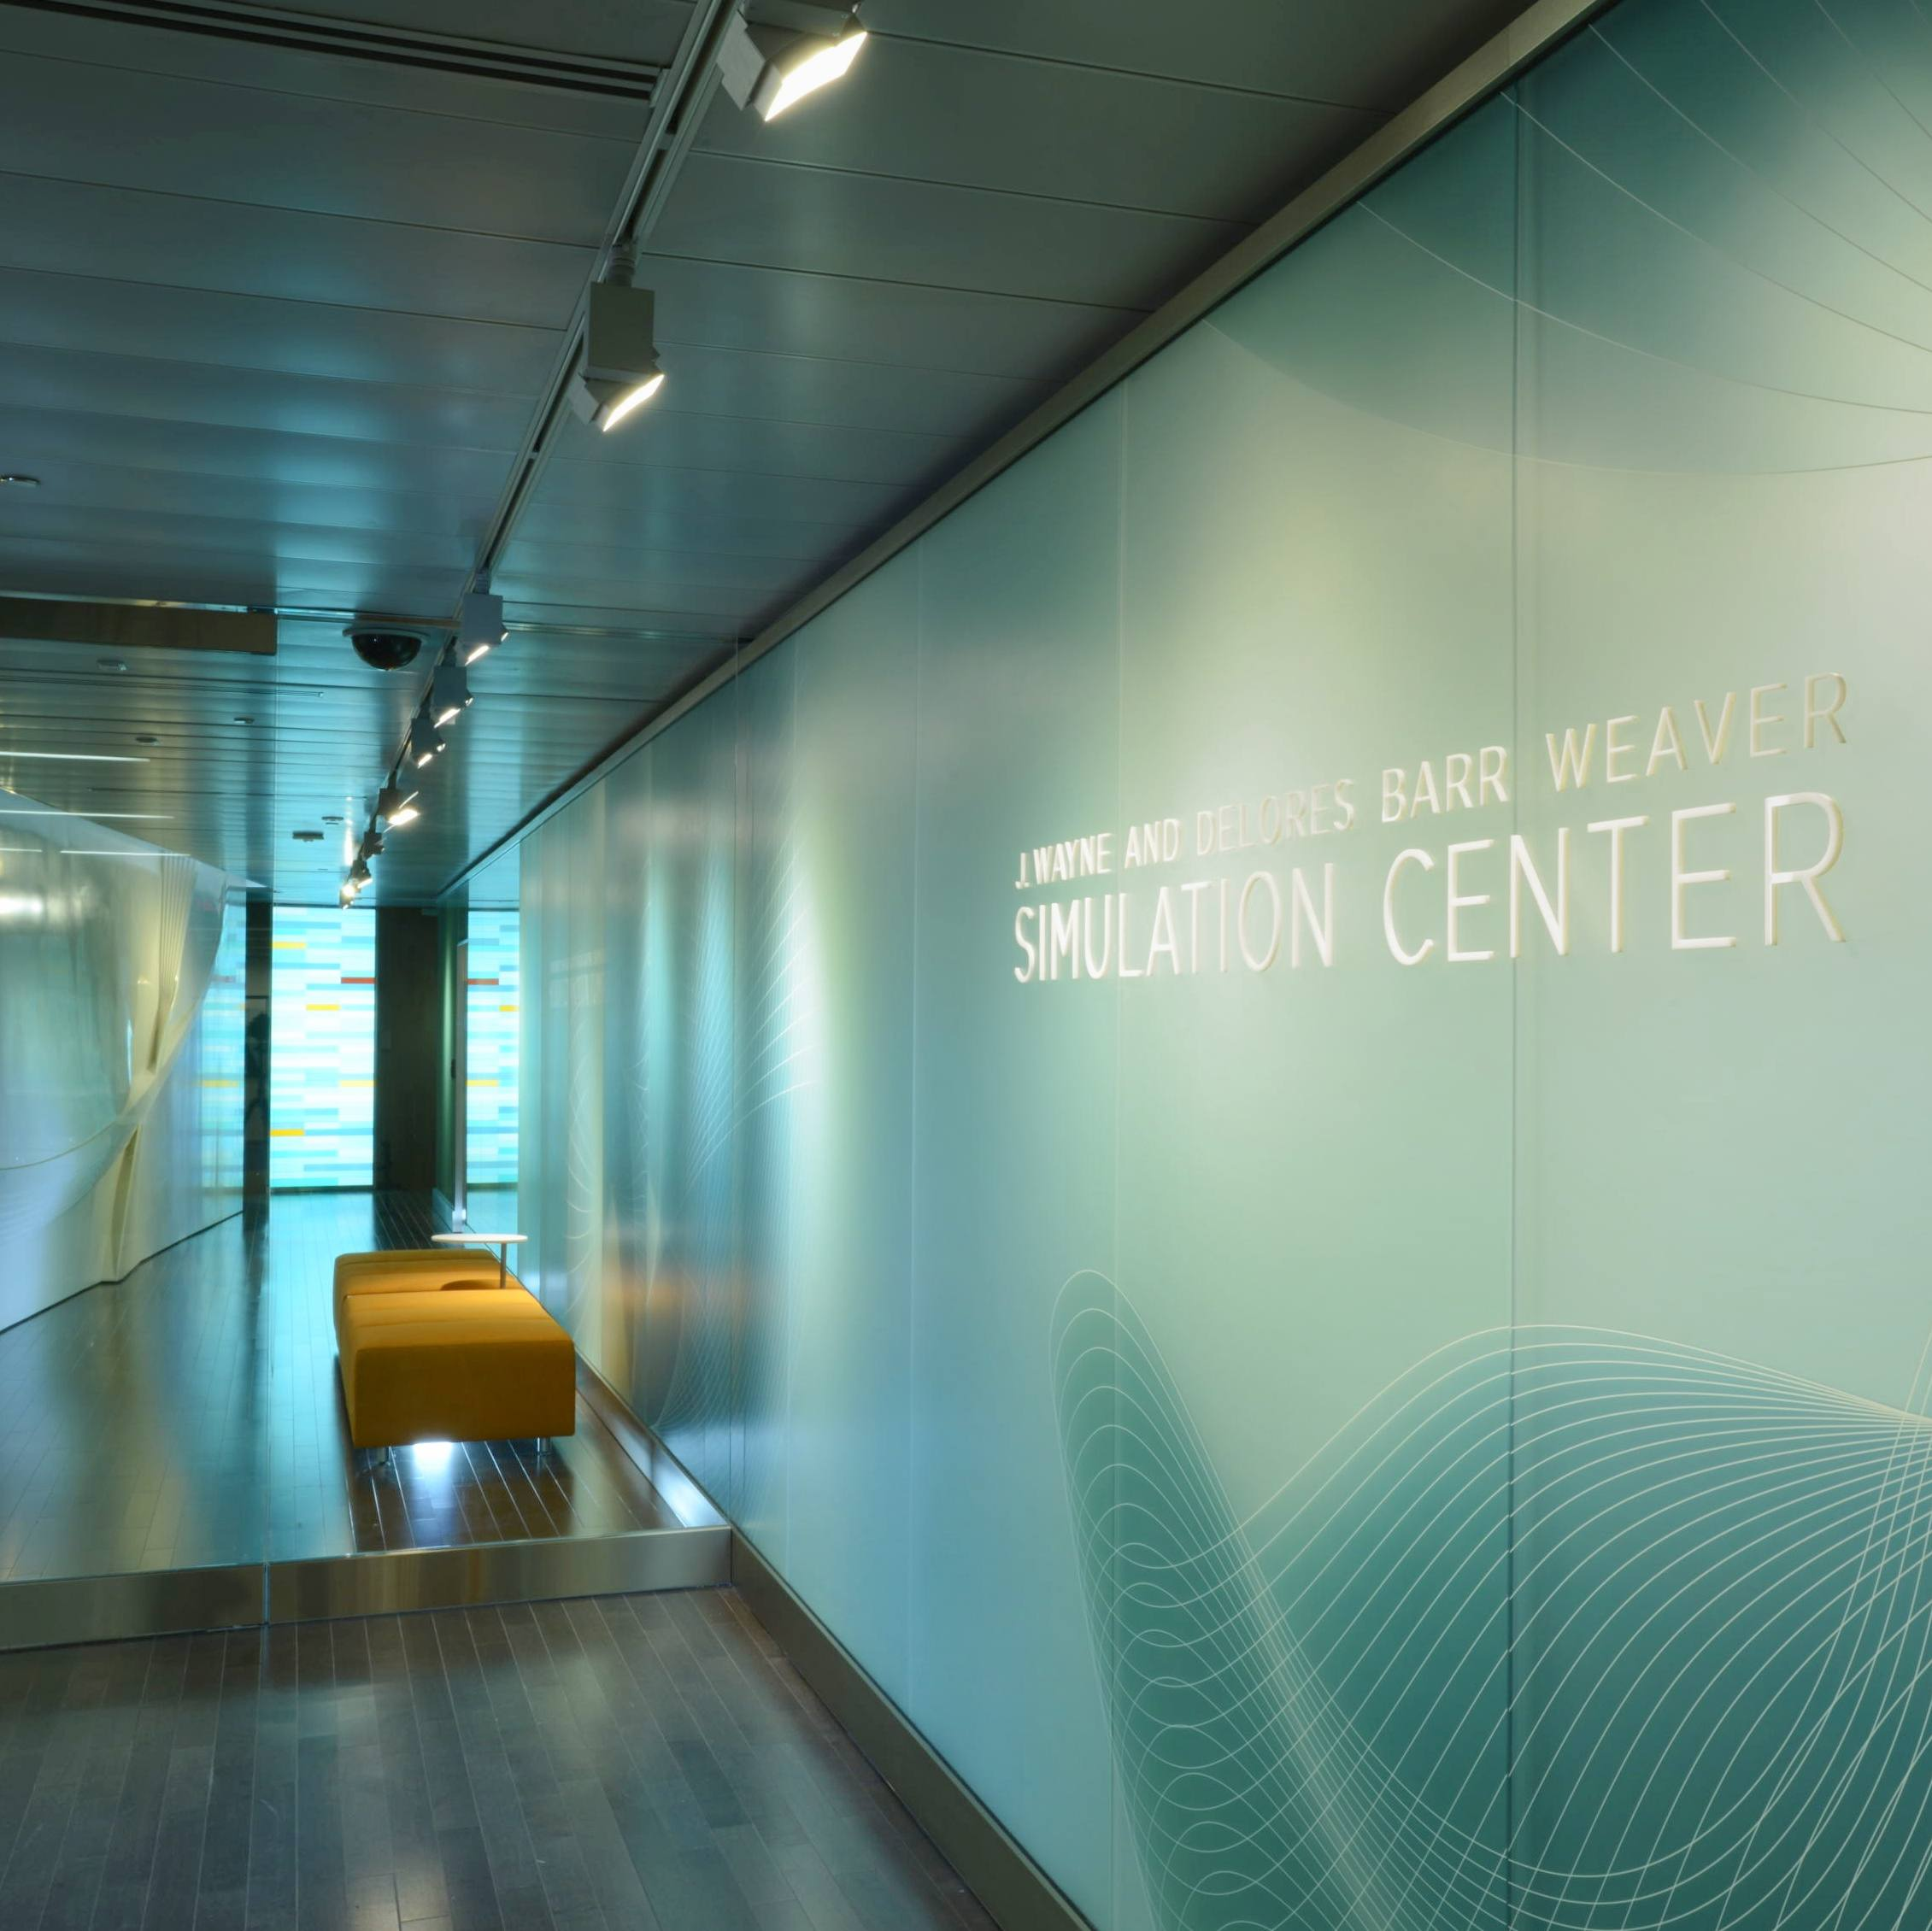 Mayo Clinic J. Wayne and Delores Barr Weaver Simulation Center entrance